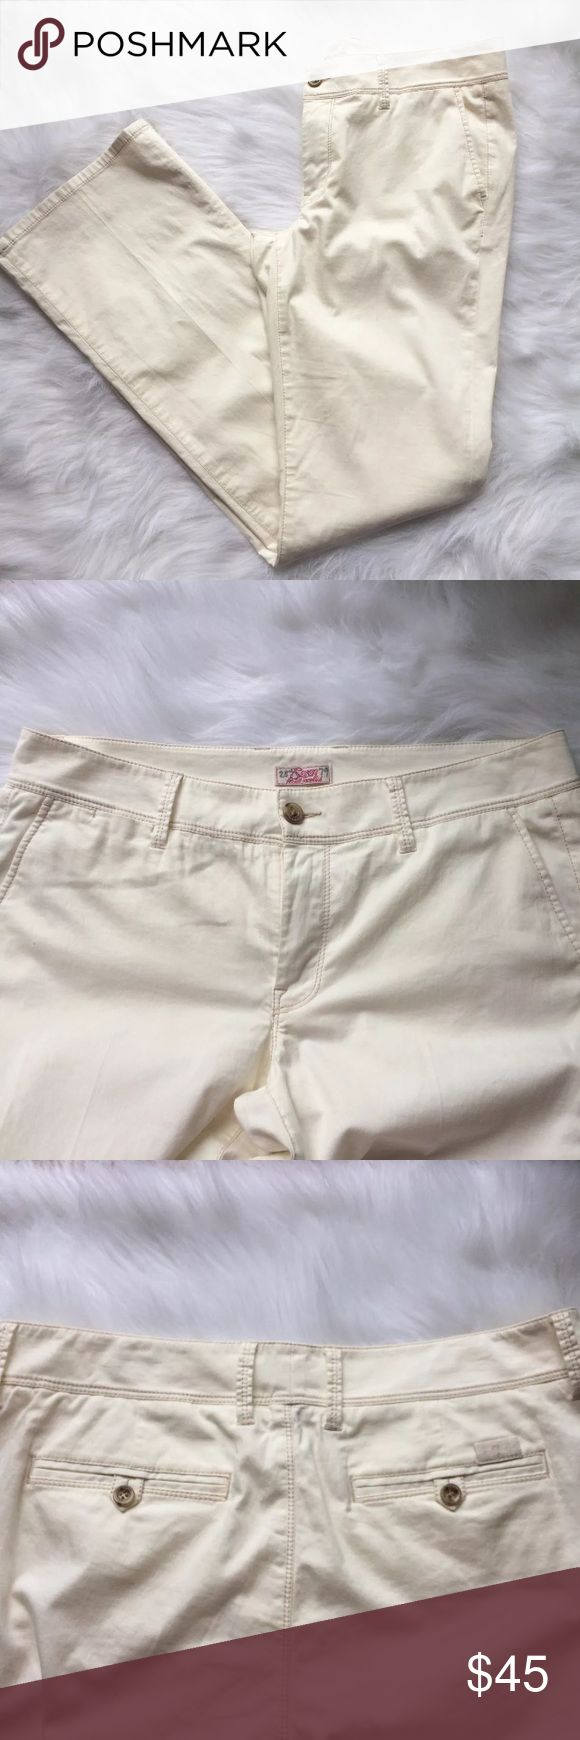 """Vintage 7 Seven For All Mankind Cream Pants 31 Excellent condition. Off white cream color. No snags or stains. Bottoms clean. 98% cotton.  34"""" inseam 7 For All Mankind Pants Boot Cut & Flare"""